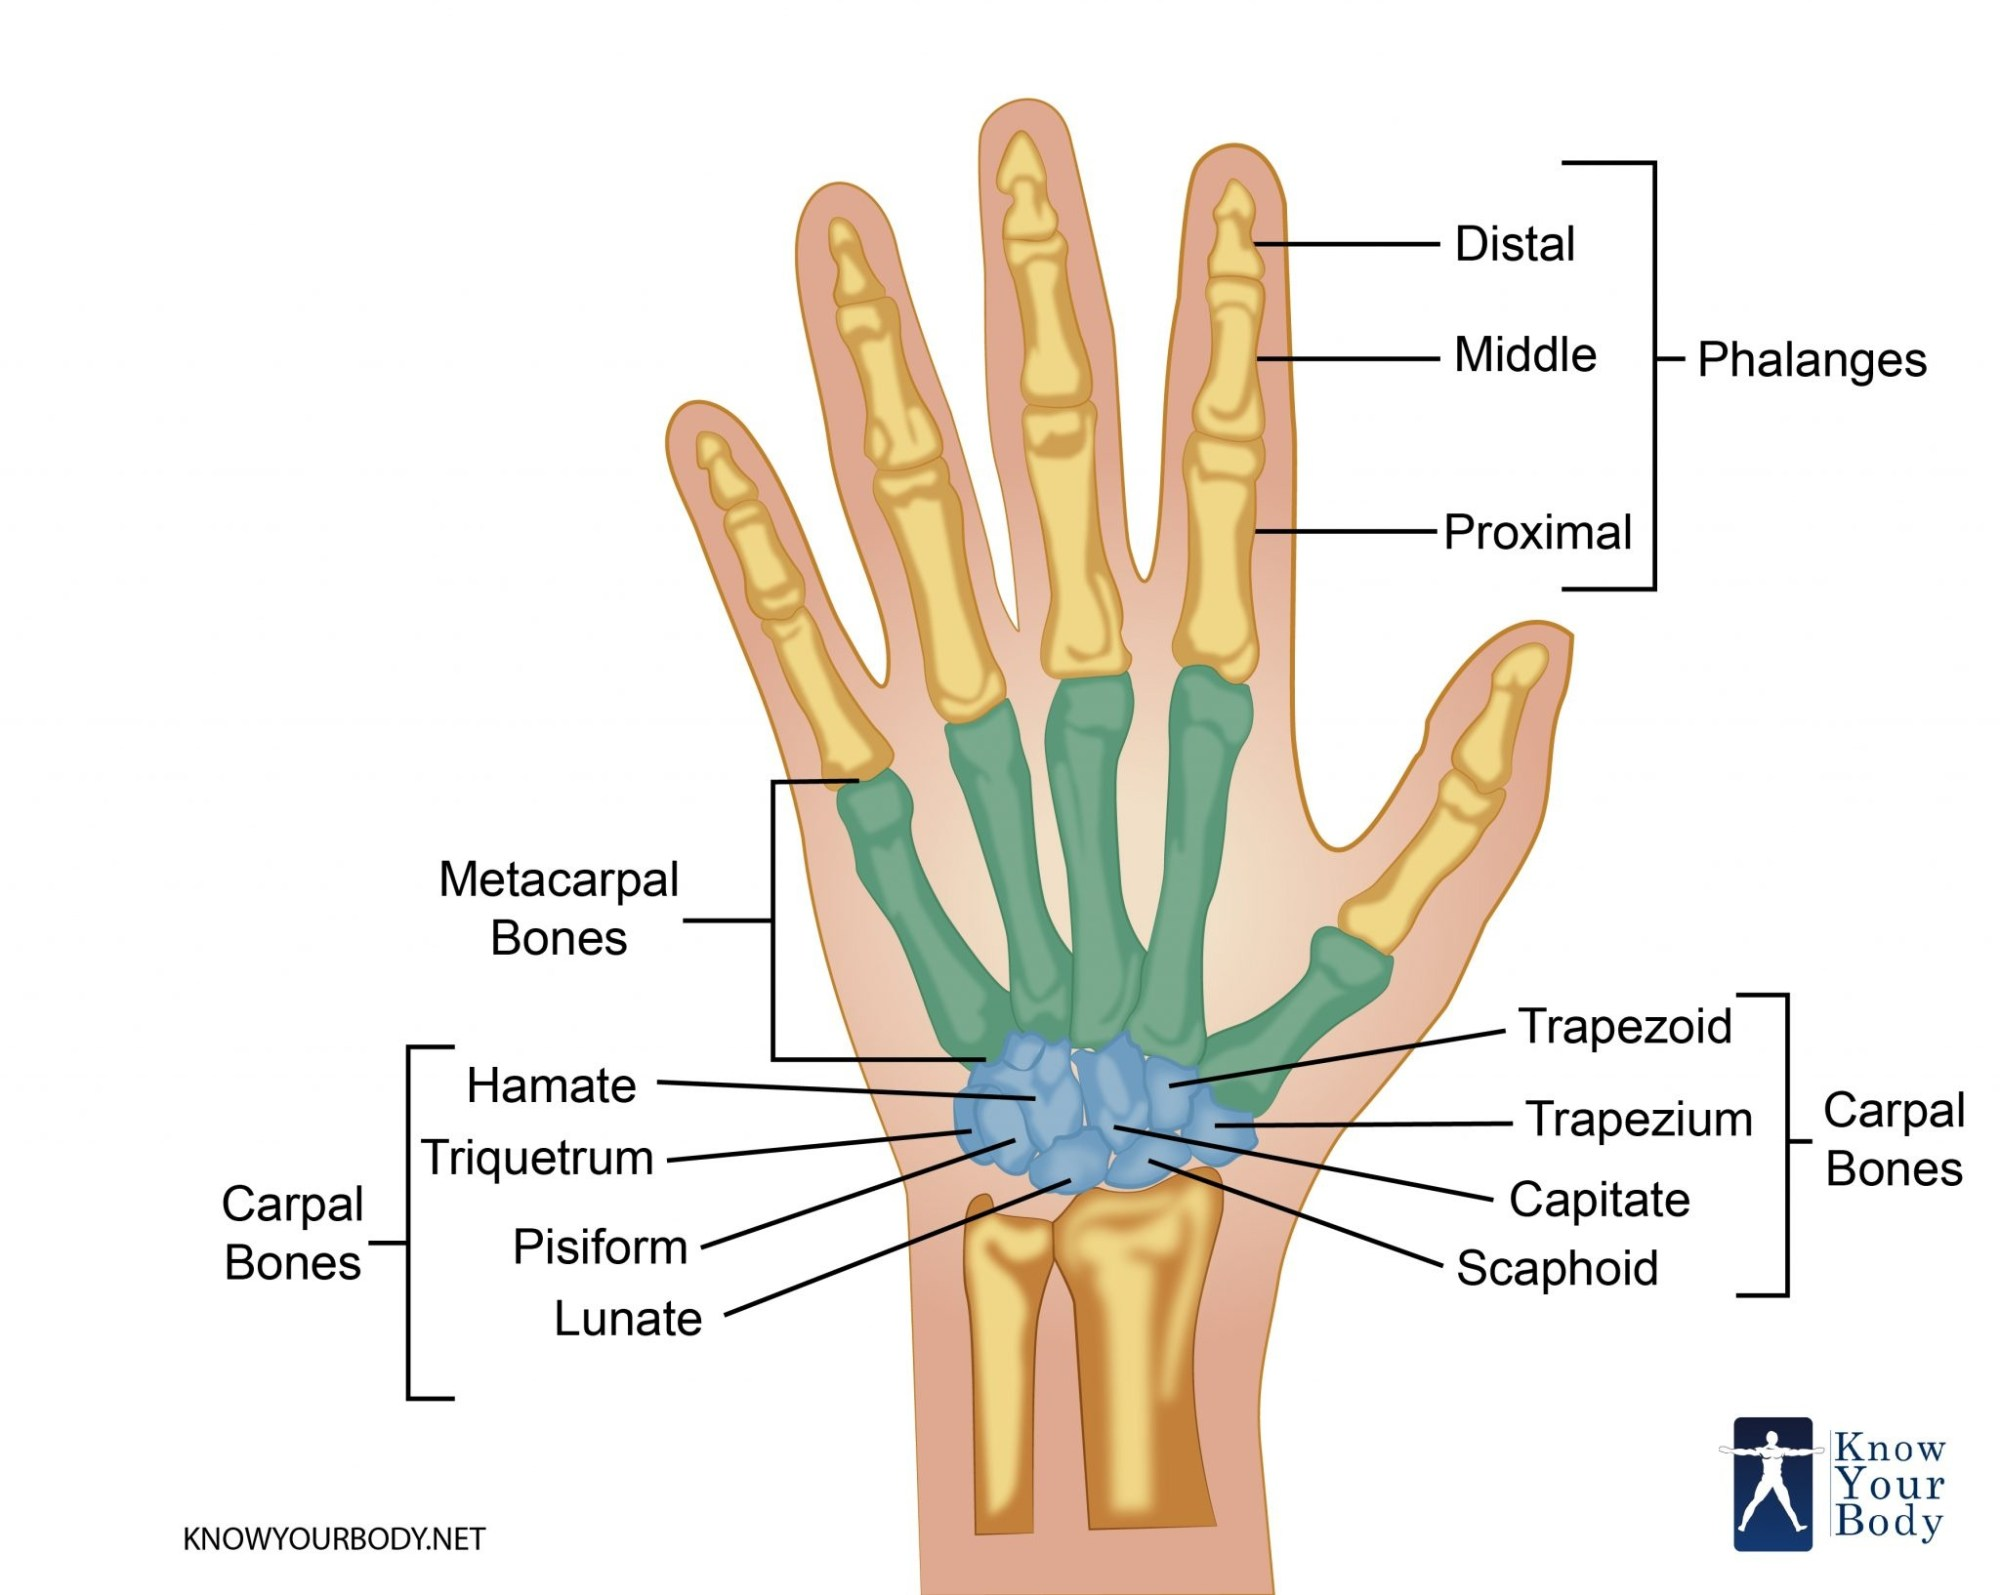 hight resolution of all fingers have 3 phalanges except the thumb has 2